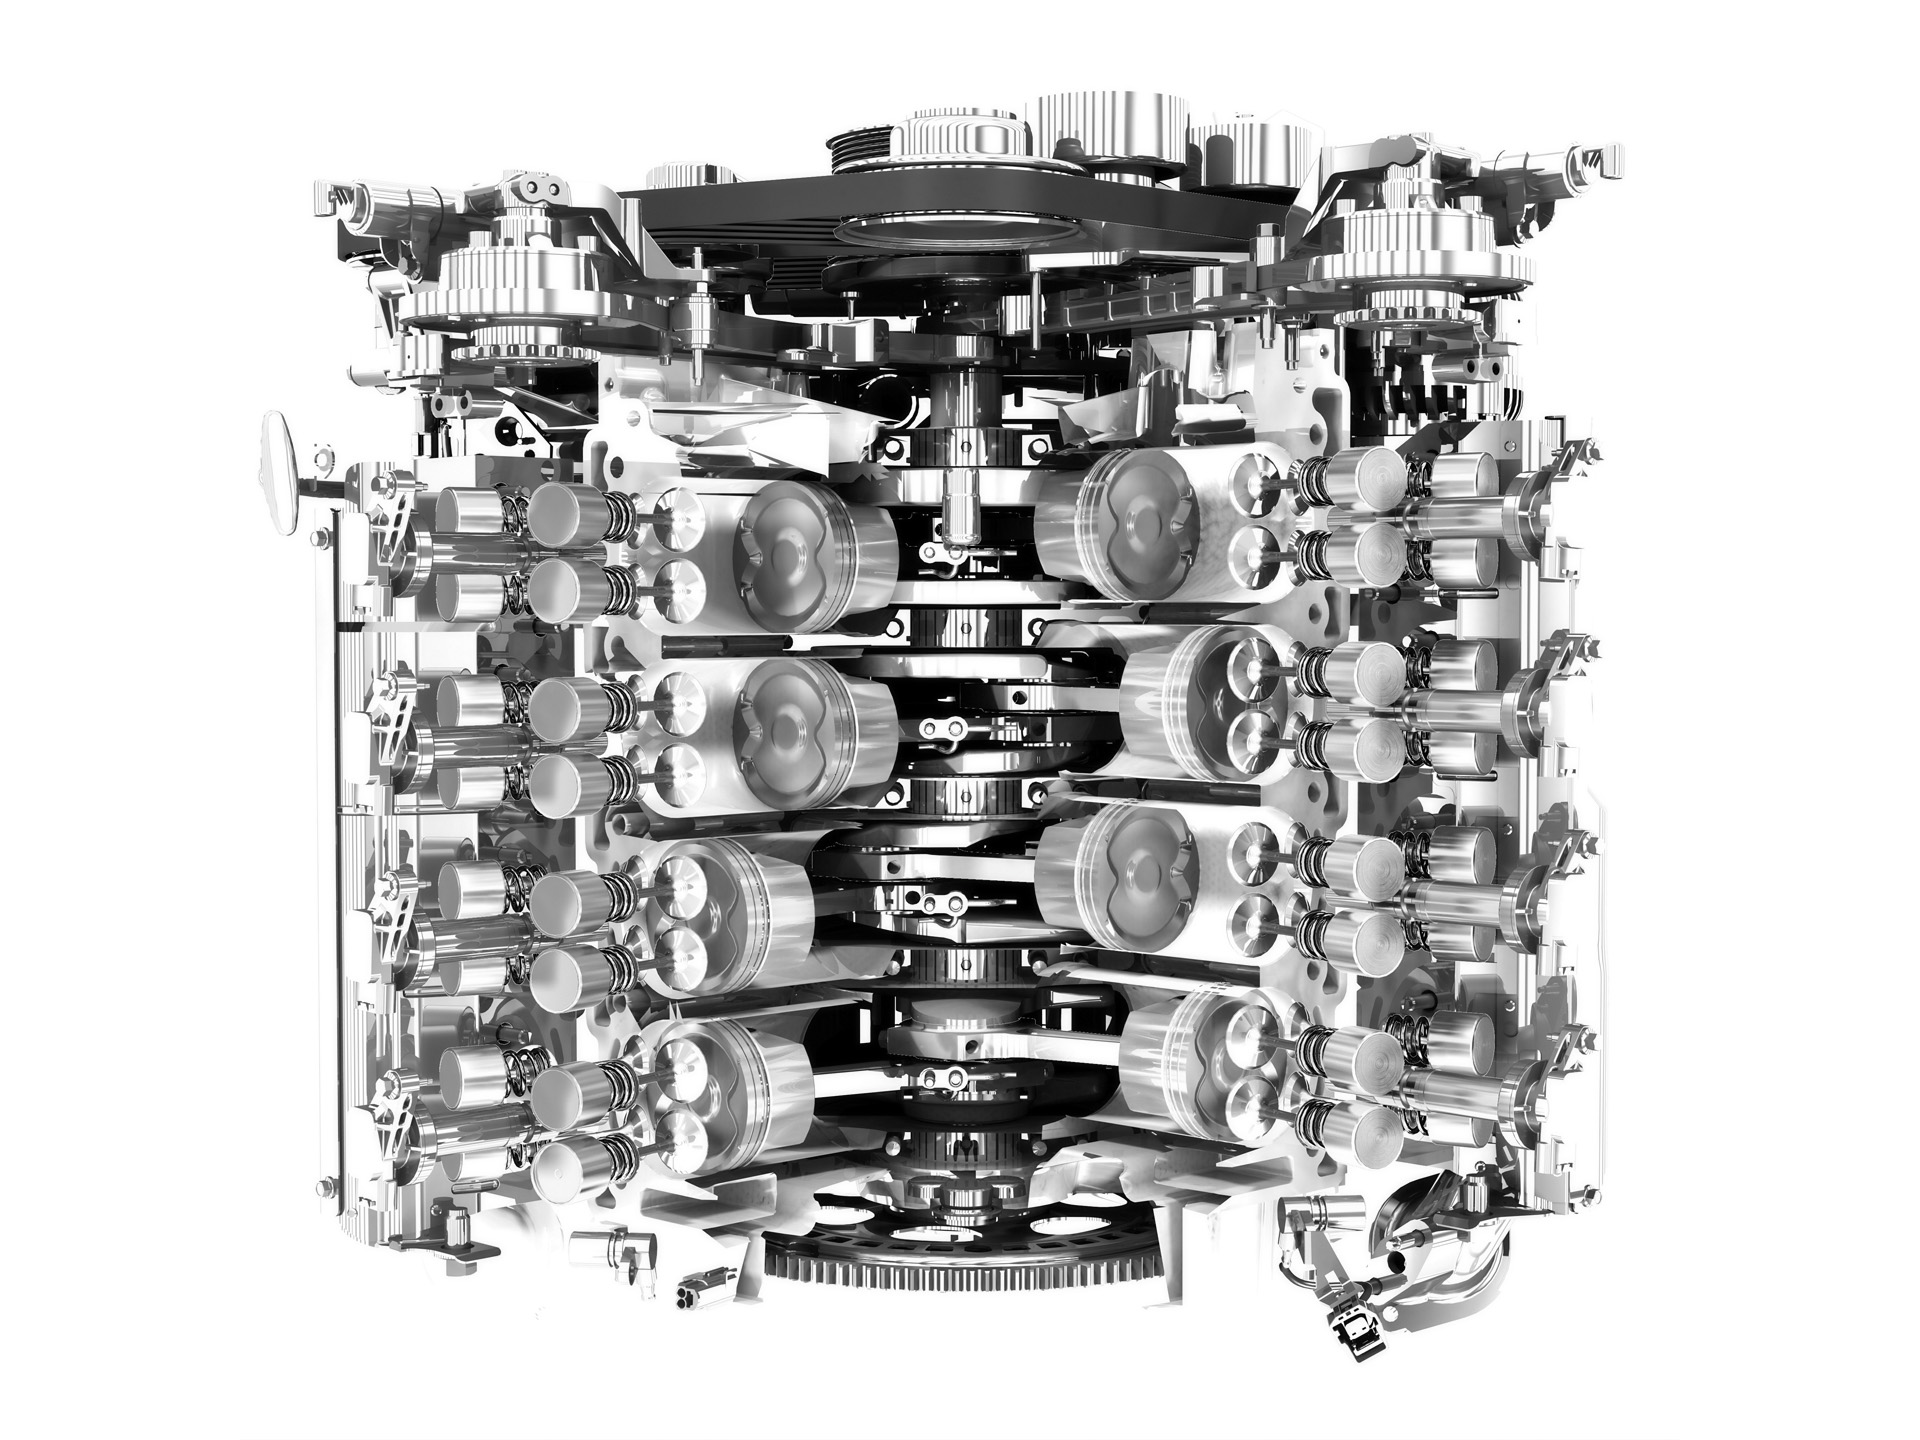 Sample P1628 Engine